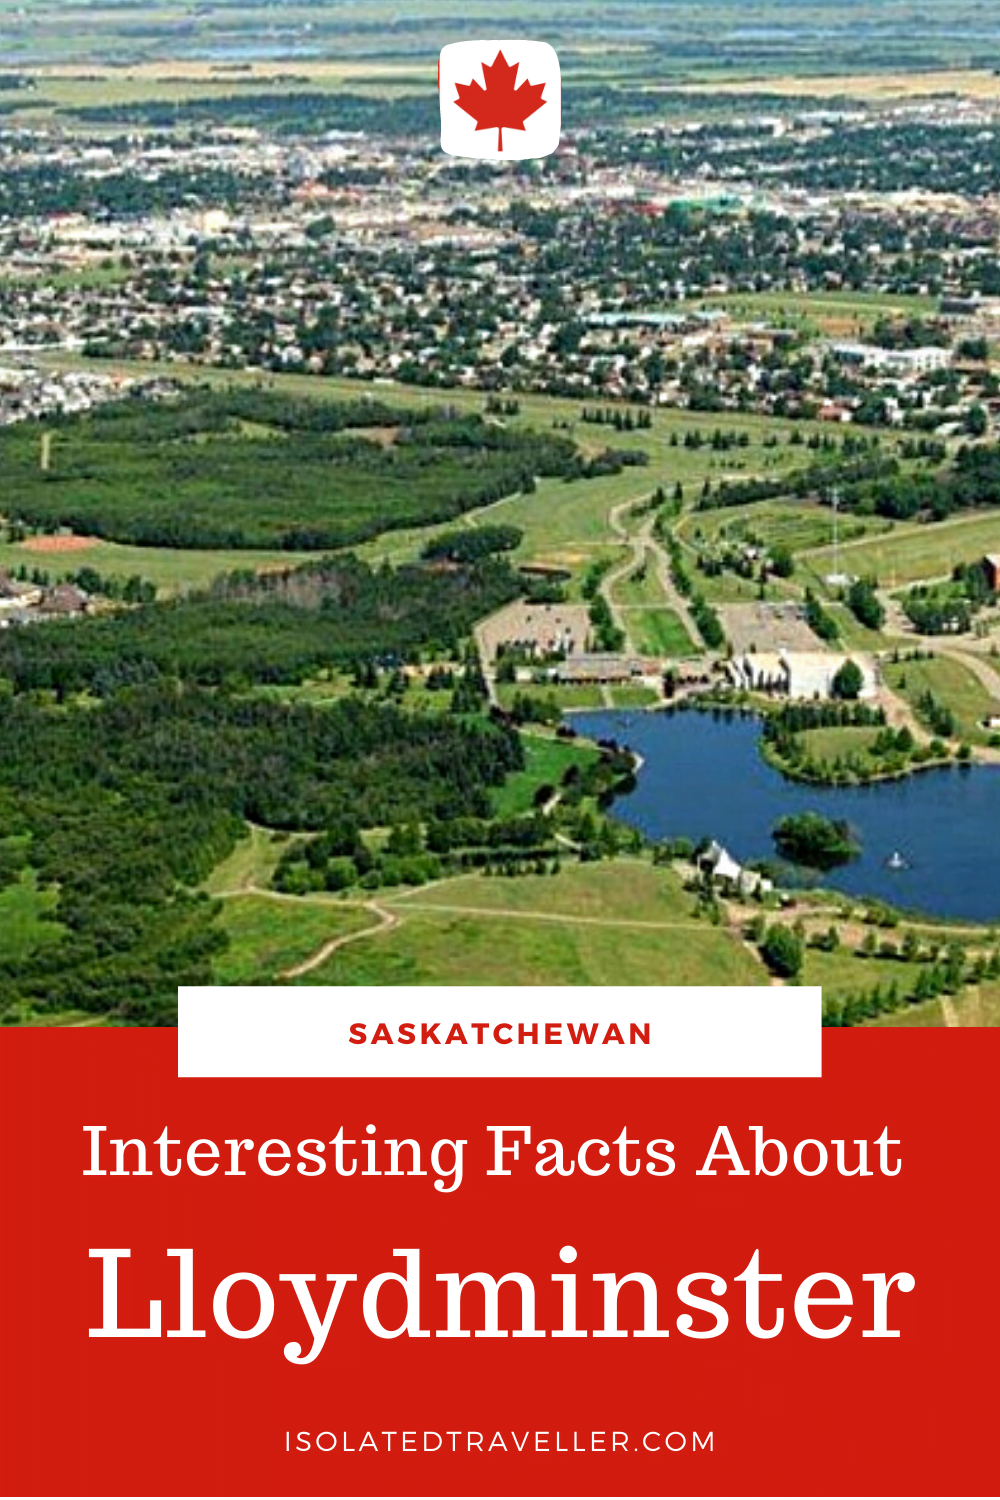 Facts About Lloydminster